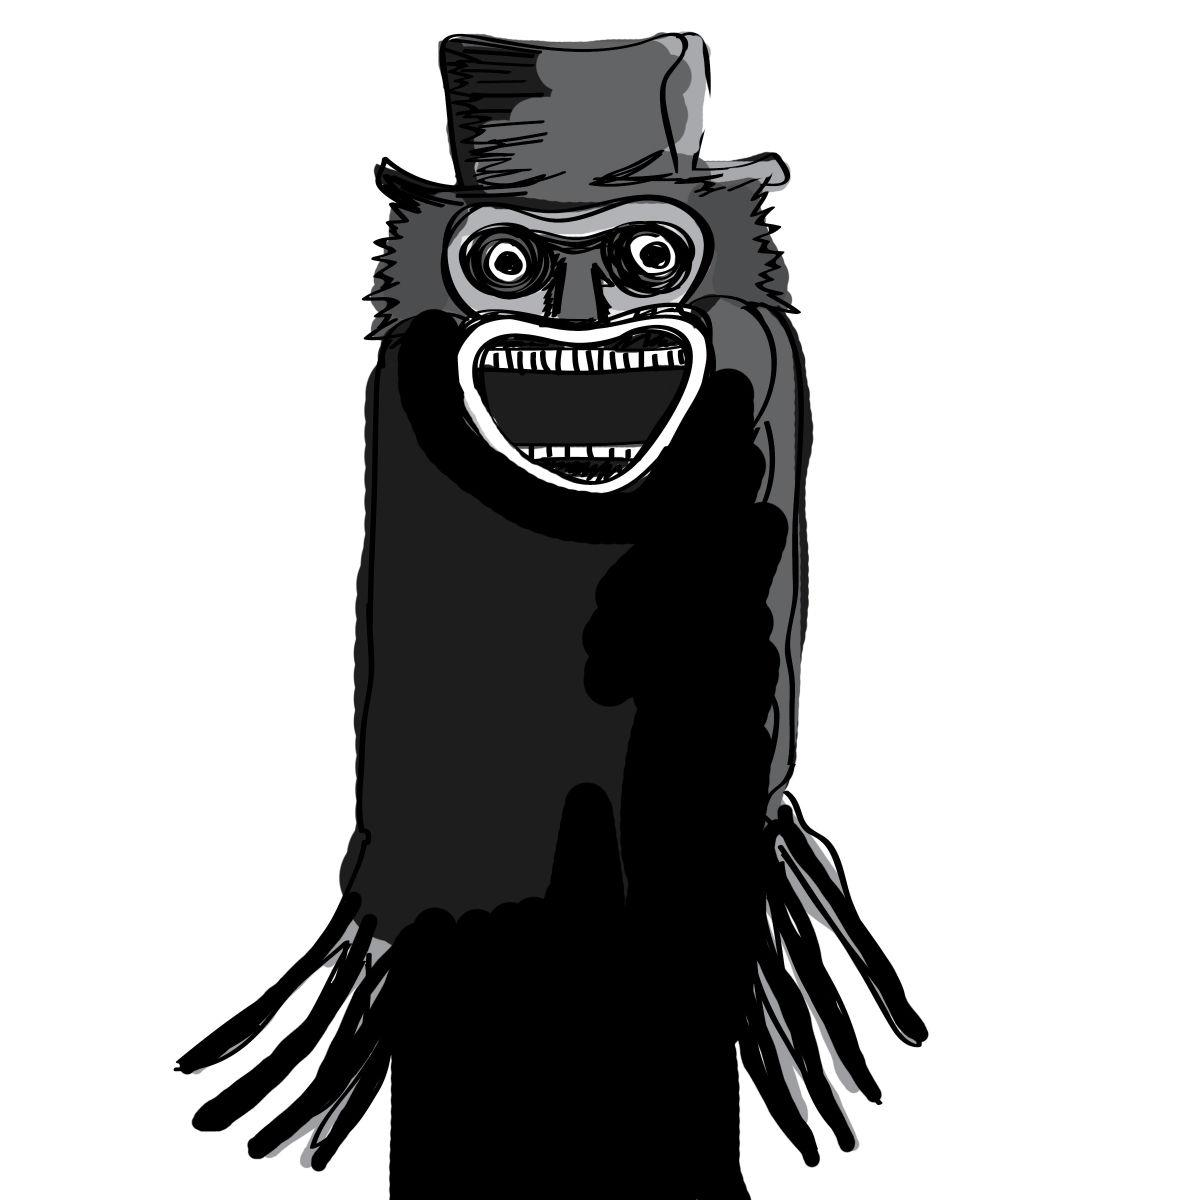 Horror Film The Babadook Released On DirecTV